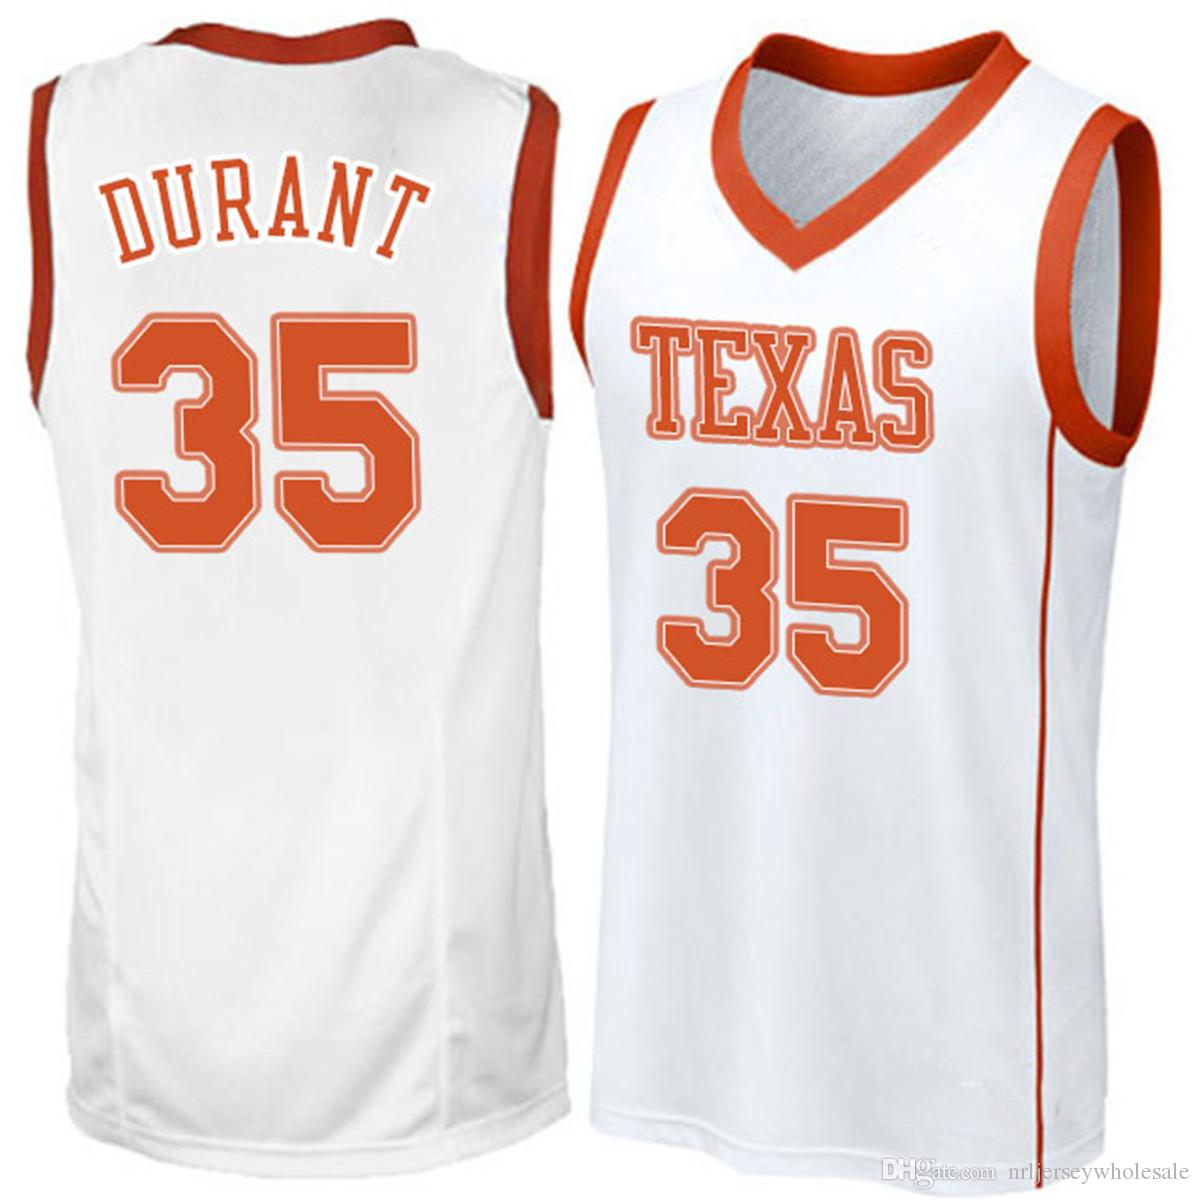 differently 03bba bbde4 Kevin 35 Durant College Jersey Texas Longhorns NCAA Basketball Jersey  Double Stitched High Quality Sports Jersey IN STOCK